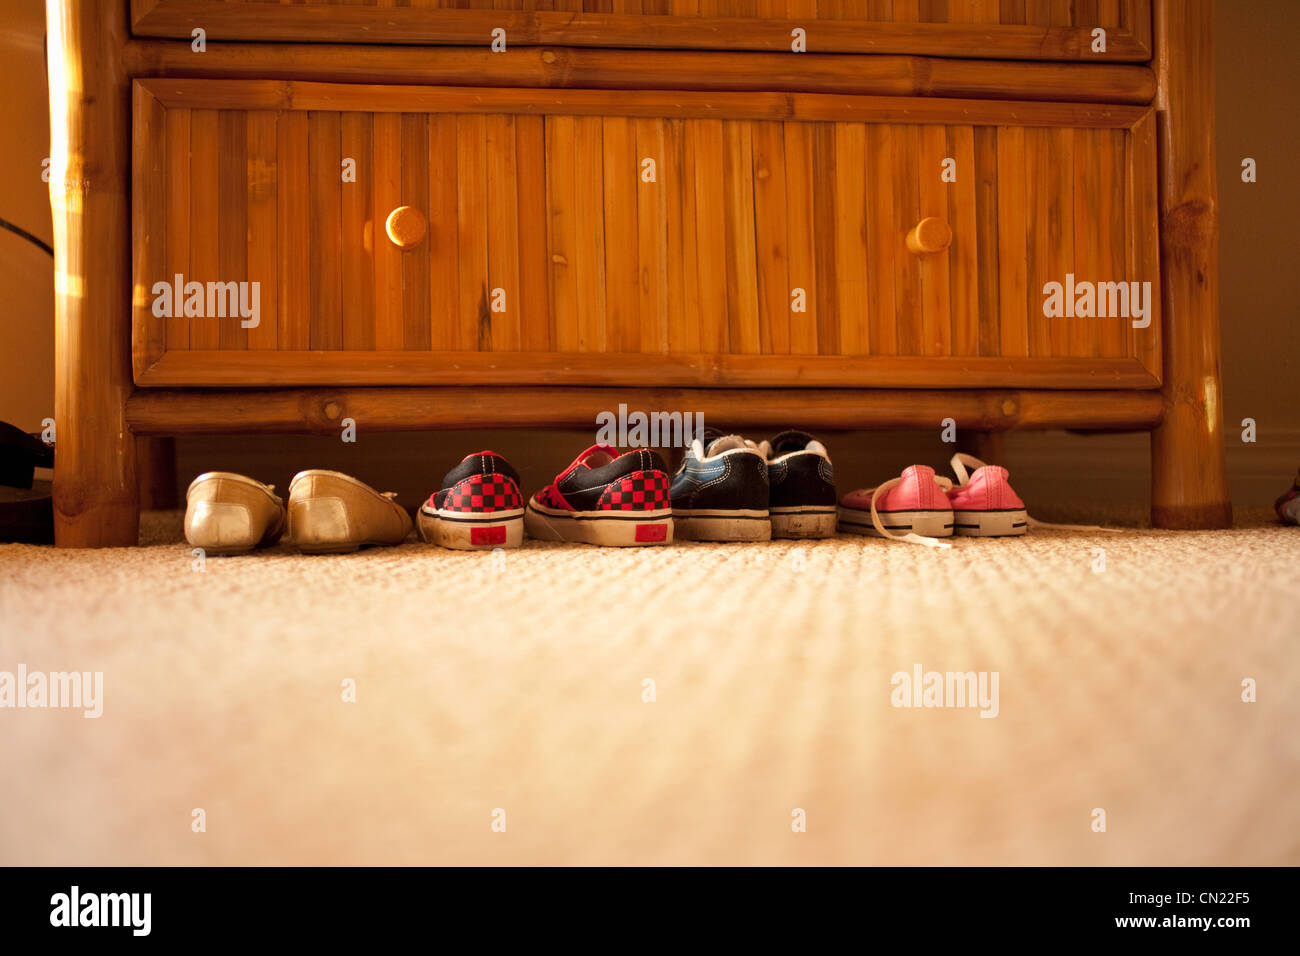 Pairs of shoes under chest of drawers - Stock Image